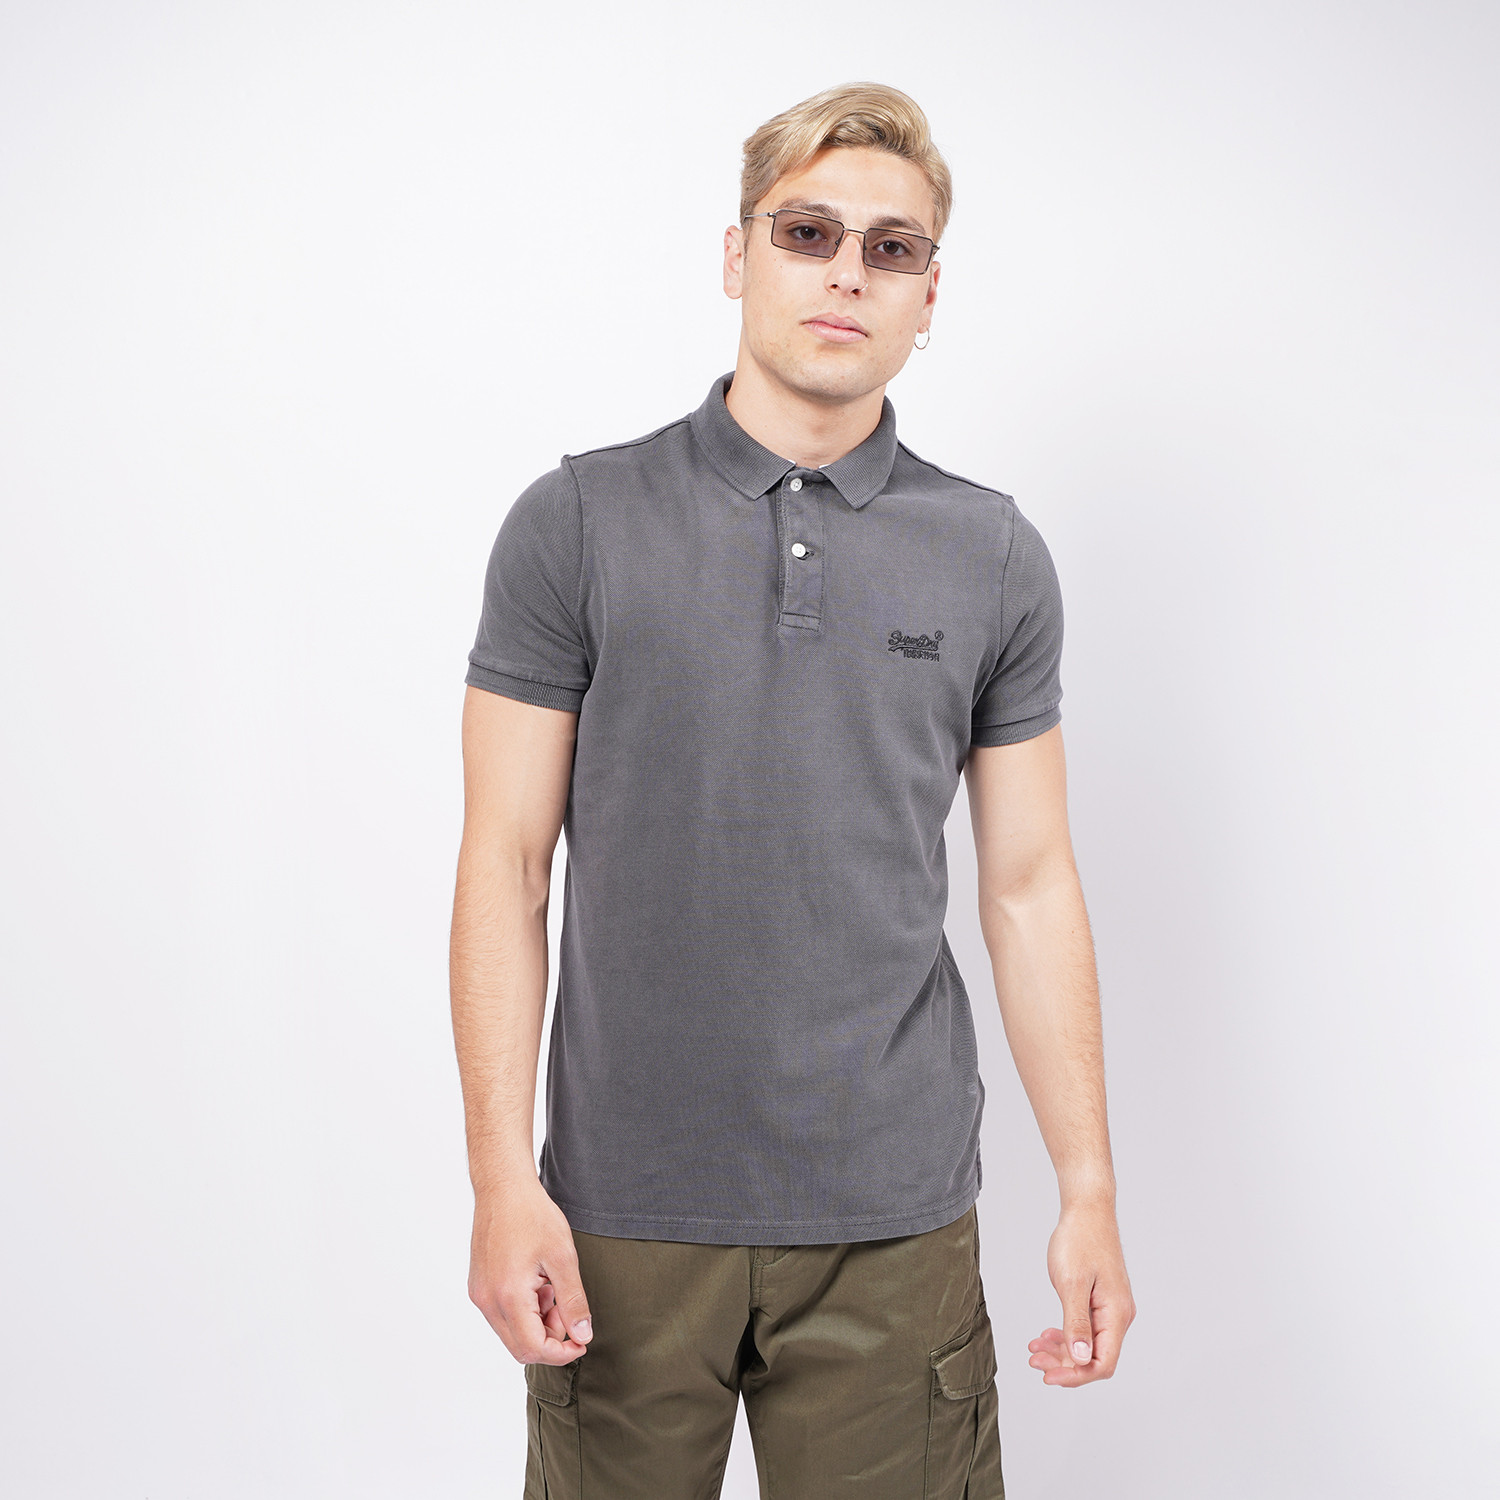 Superdry D2 Vintage Destroyed Pique Ανδρικό Polo T-shirt (9000073804_51639)